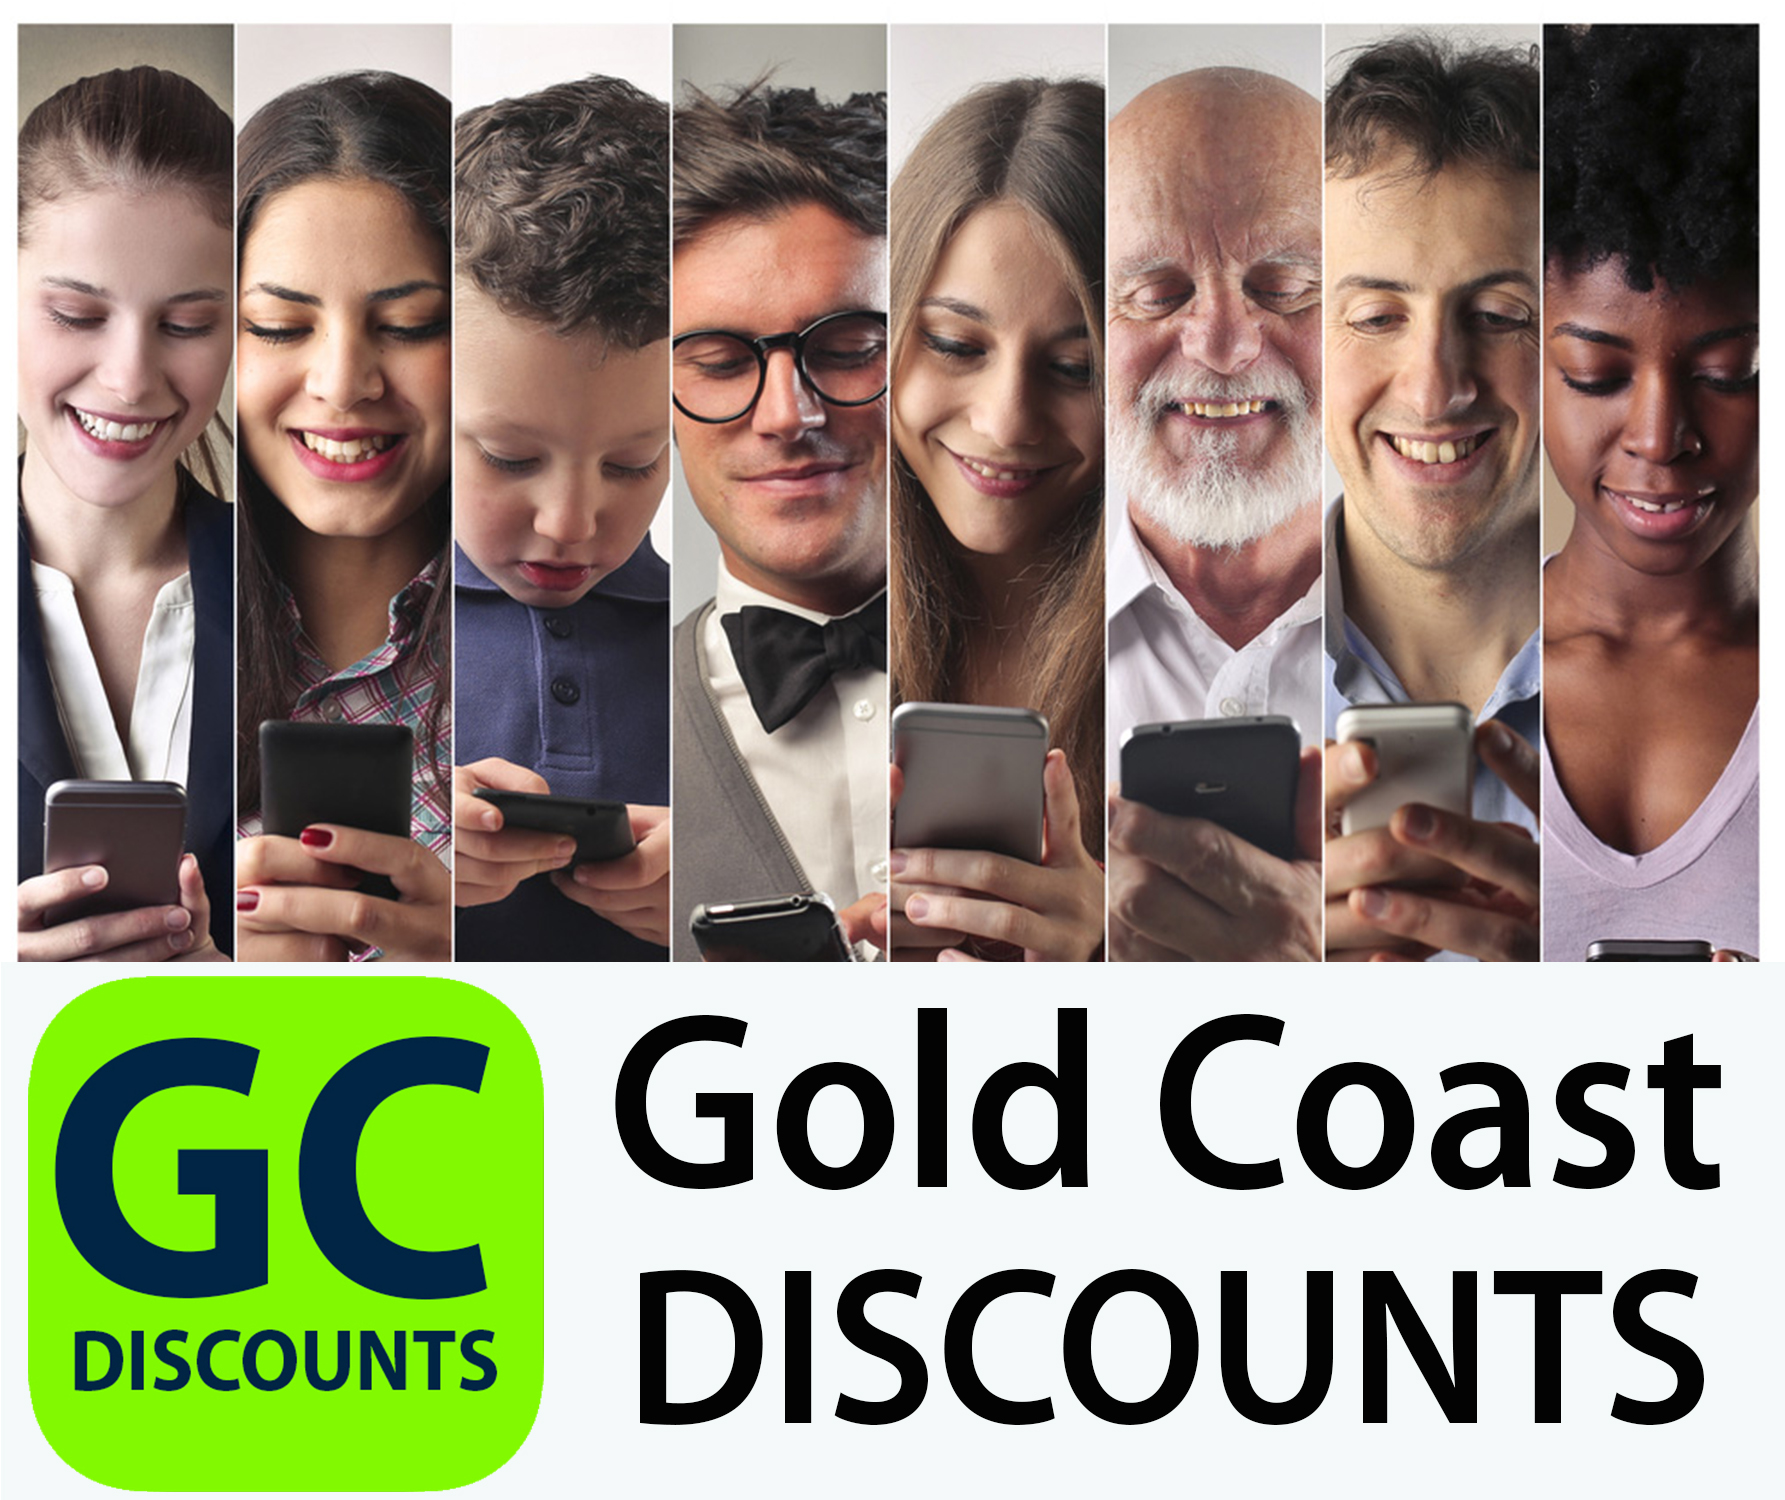 Gold Coast Discounts